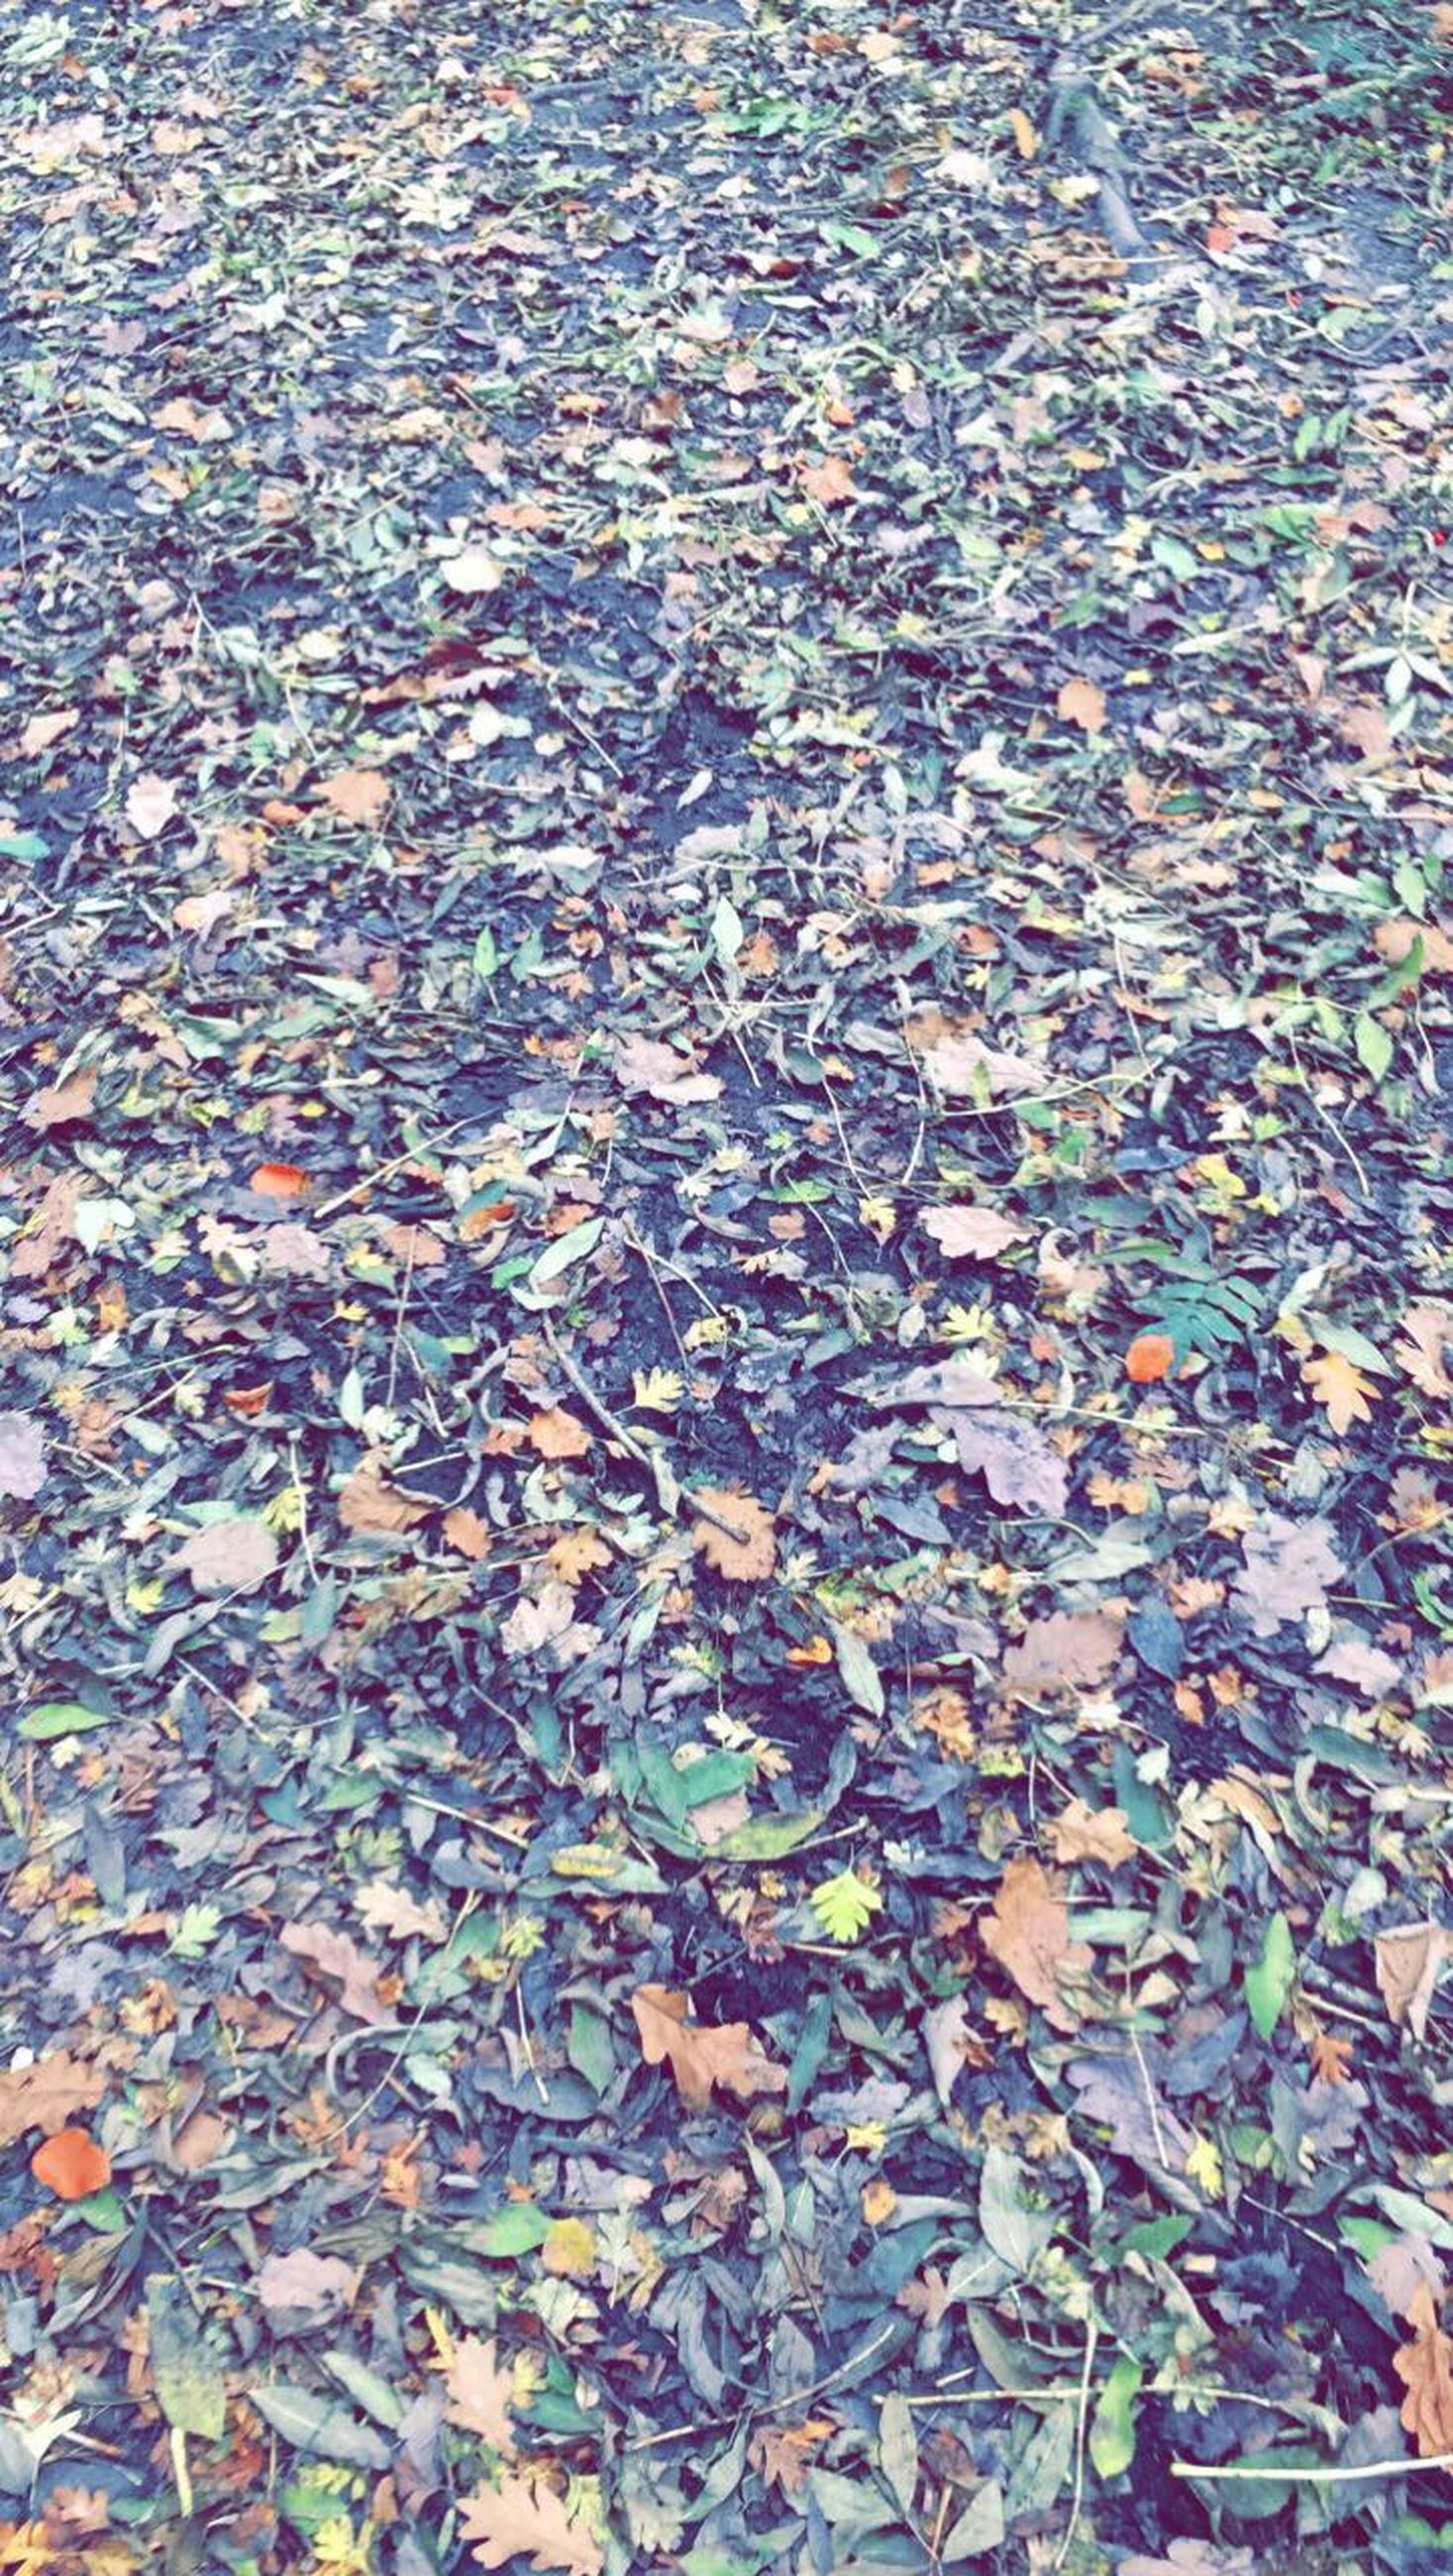 leaf, autumn, change, season, backgrounds, full frame, leaves, dry, ground, day, nature, fallen, natural condition, tranquility, abundance, outdoors, fragility, fallen leaf, tranquil scene, beauty in nature, large group of objects, scenics, many, surface level, no people, vibrant color